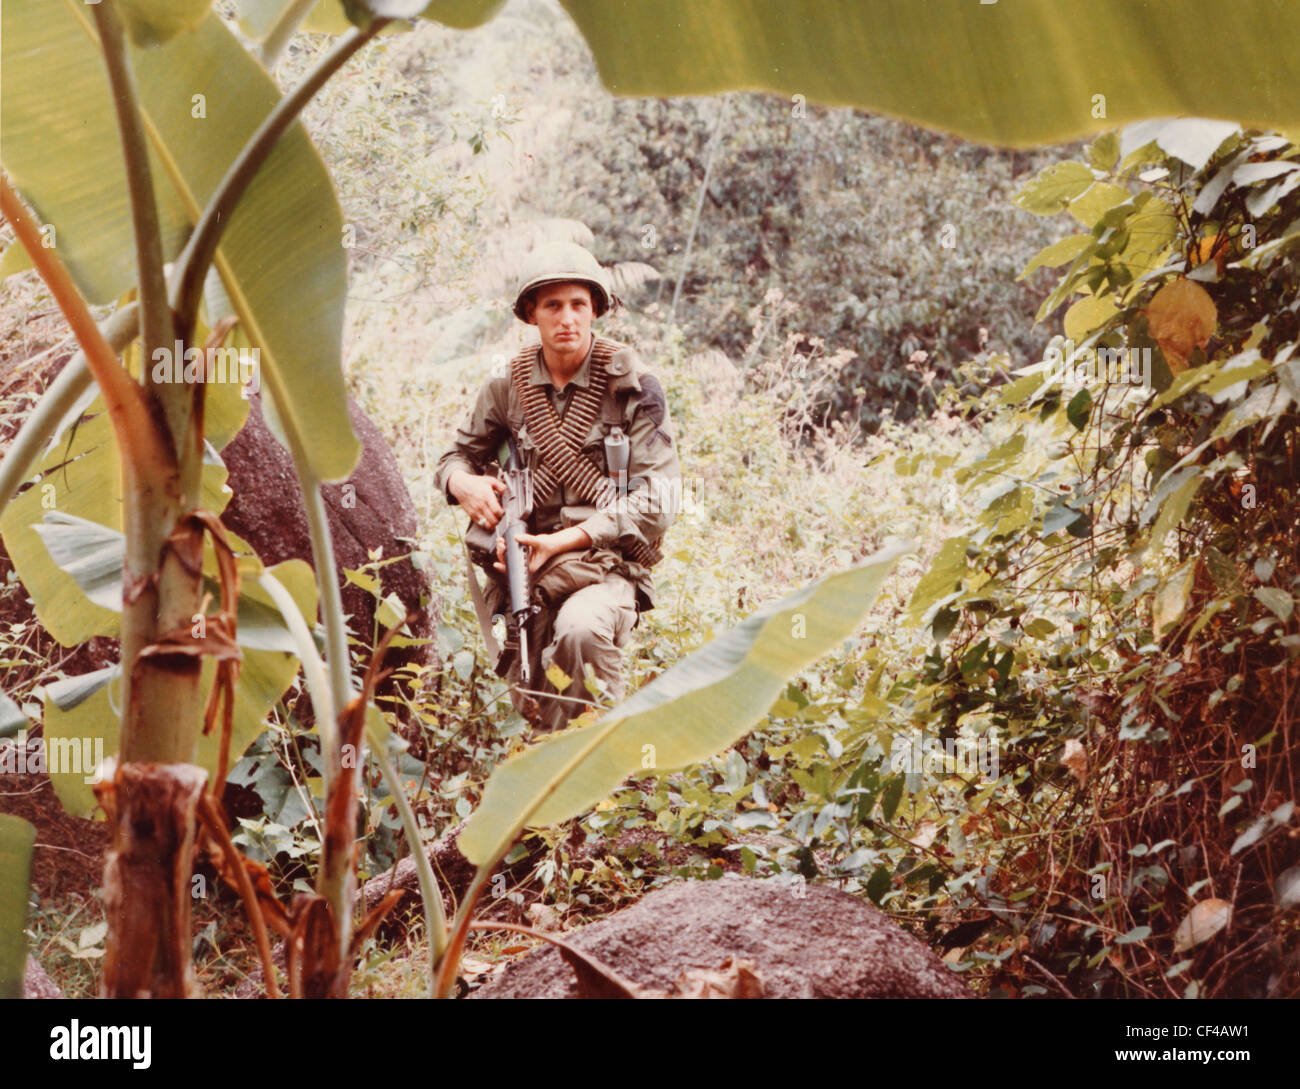 ammunition bearer 1st Cav Division Airbmoble moves along a mountain trail during operation pershing search and destroy - Stock Image